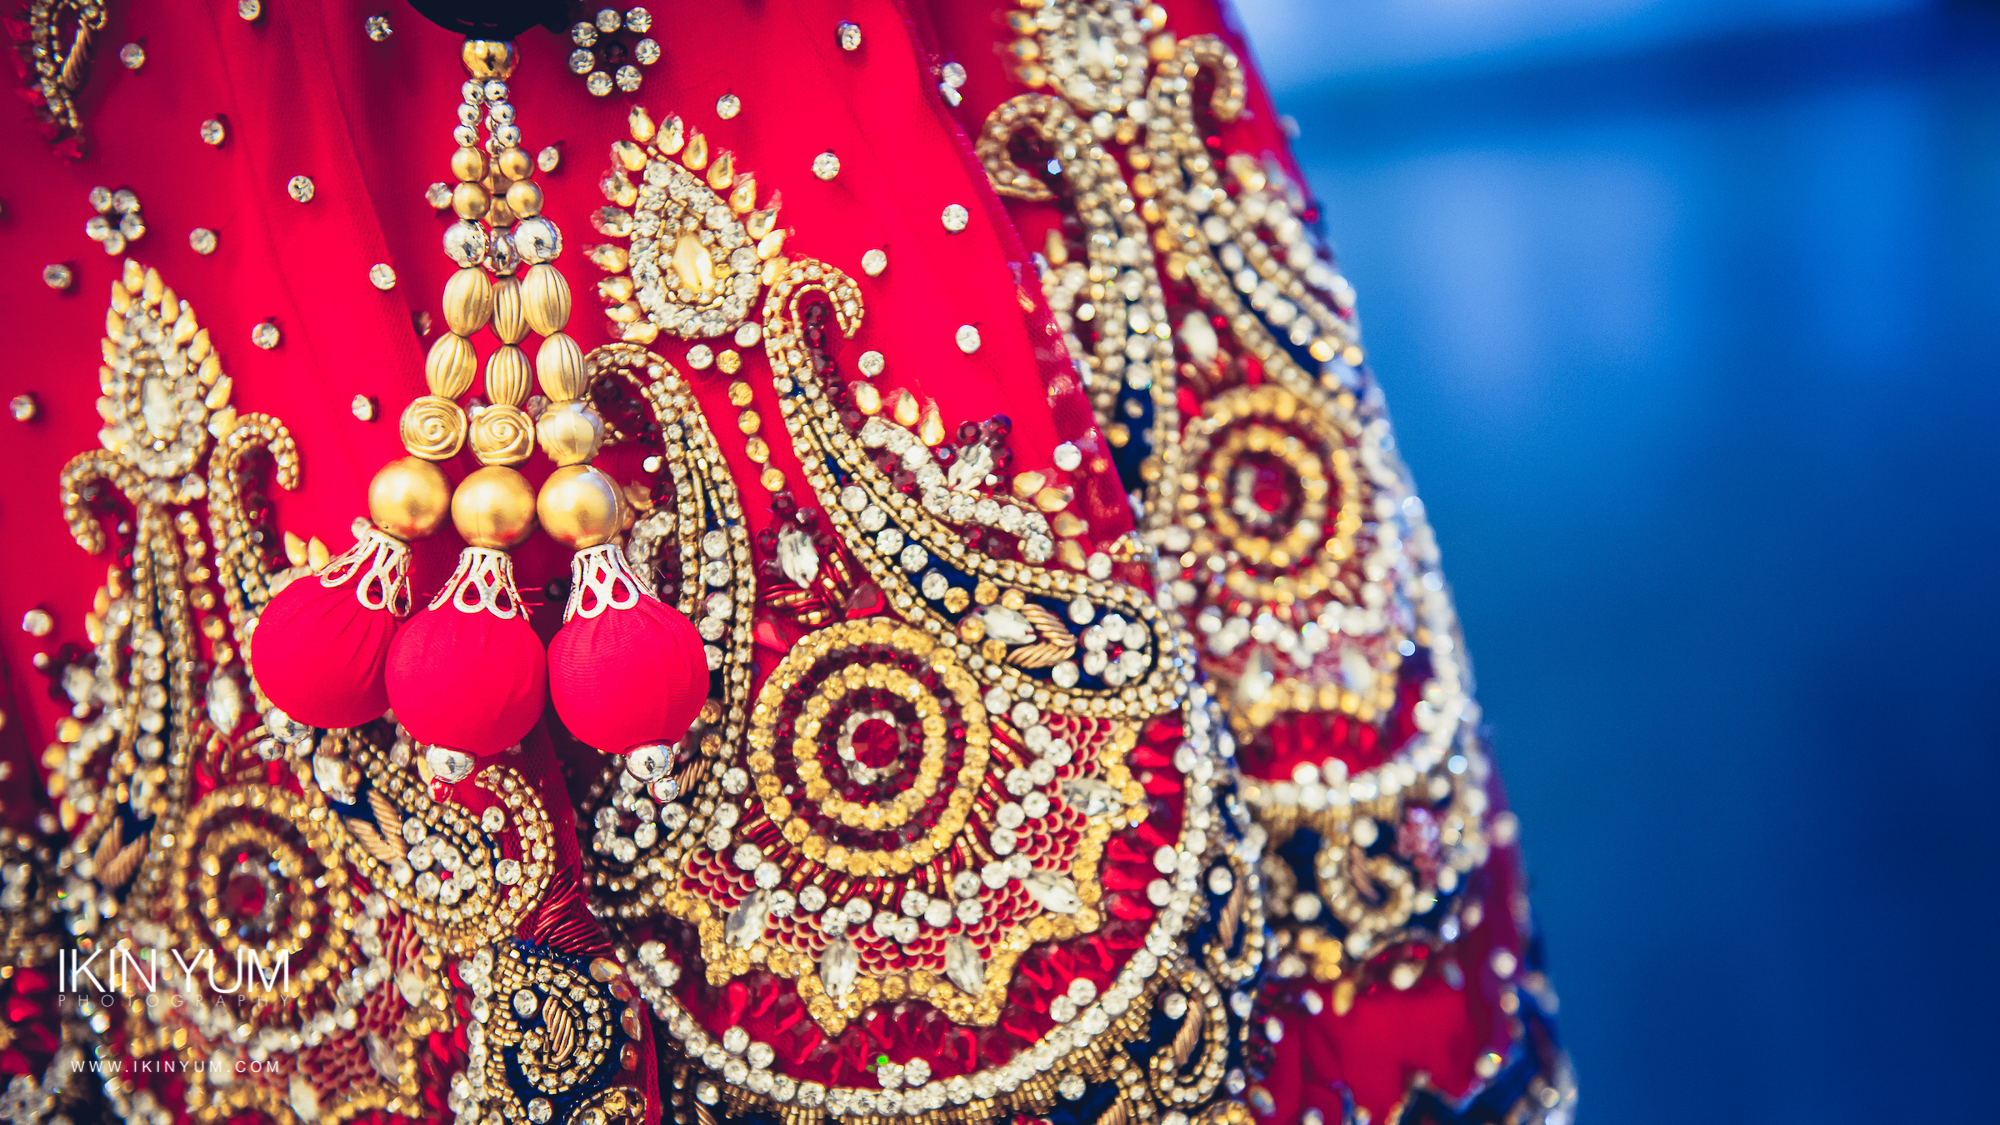 Oshwal Centre Wedding - Ikin Yum Photography-026.jpg